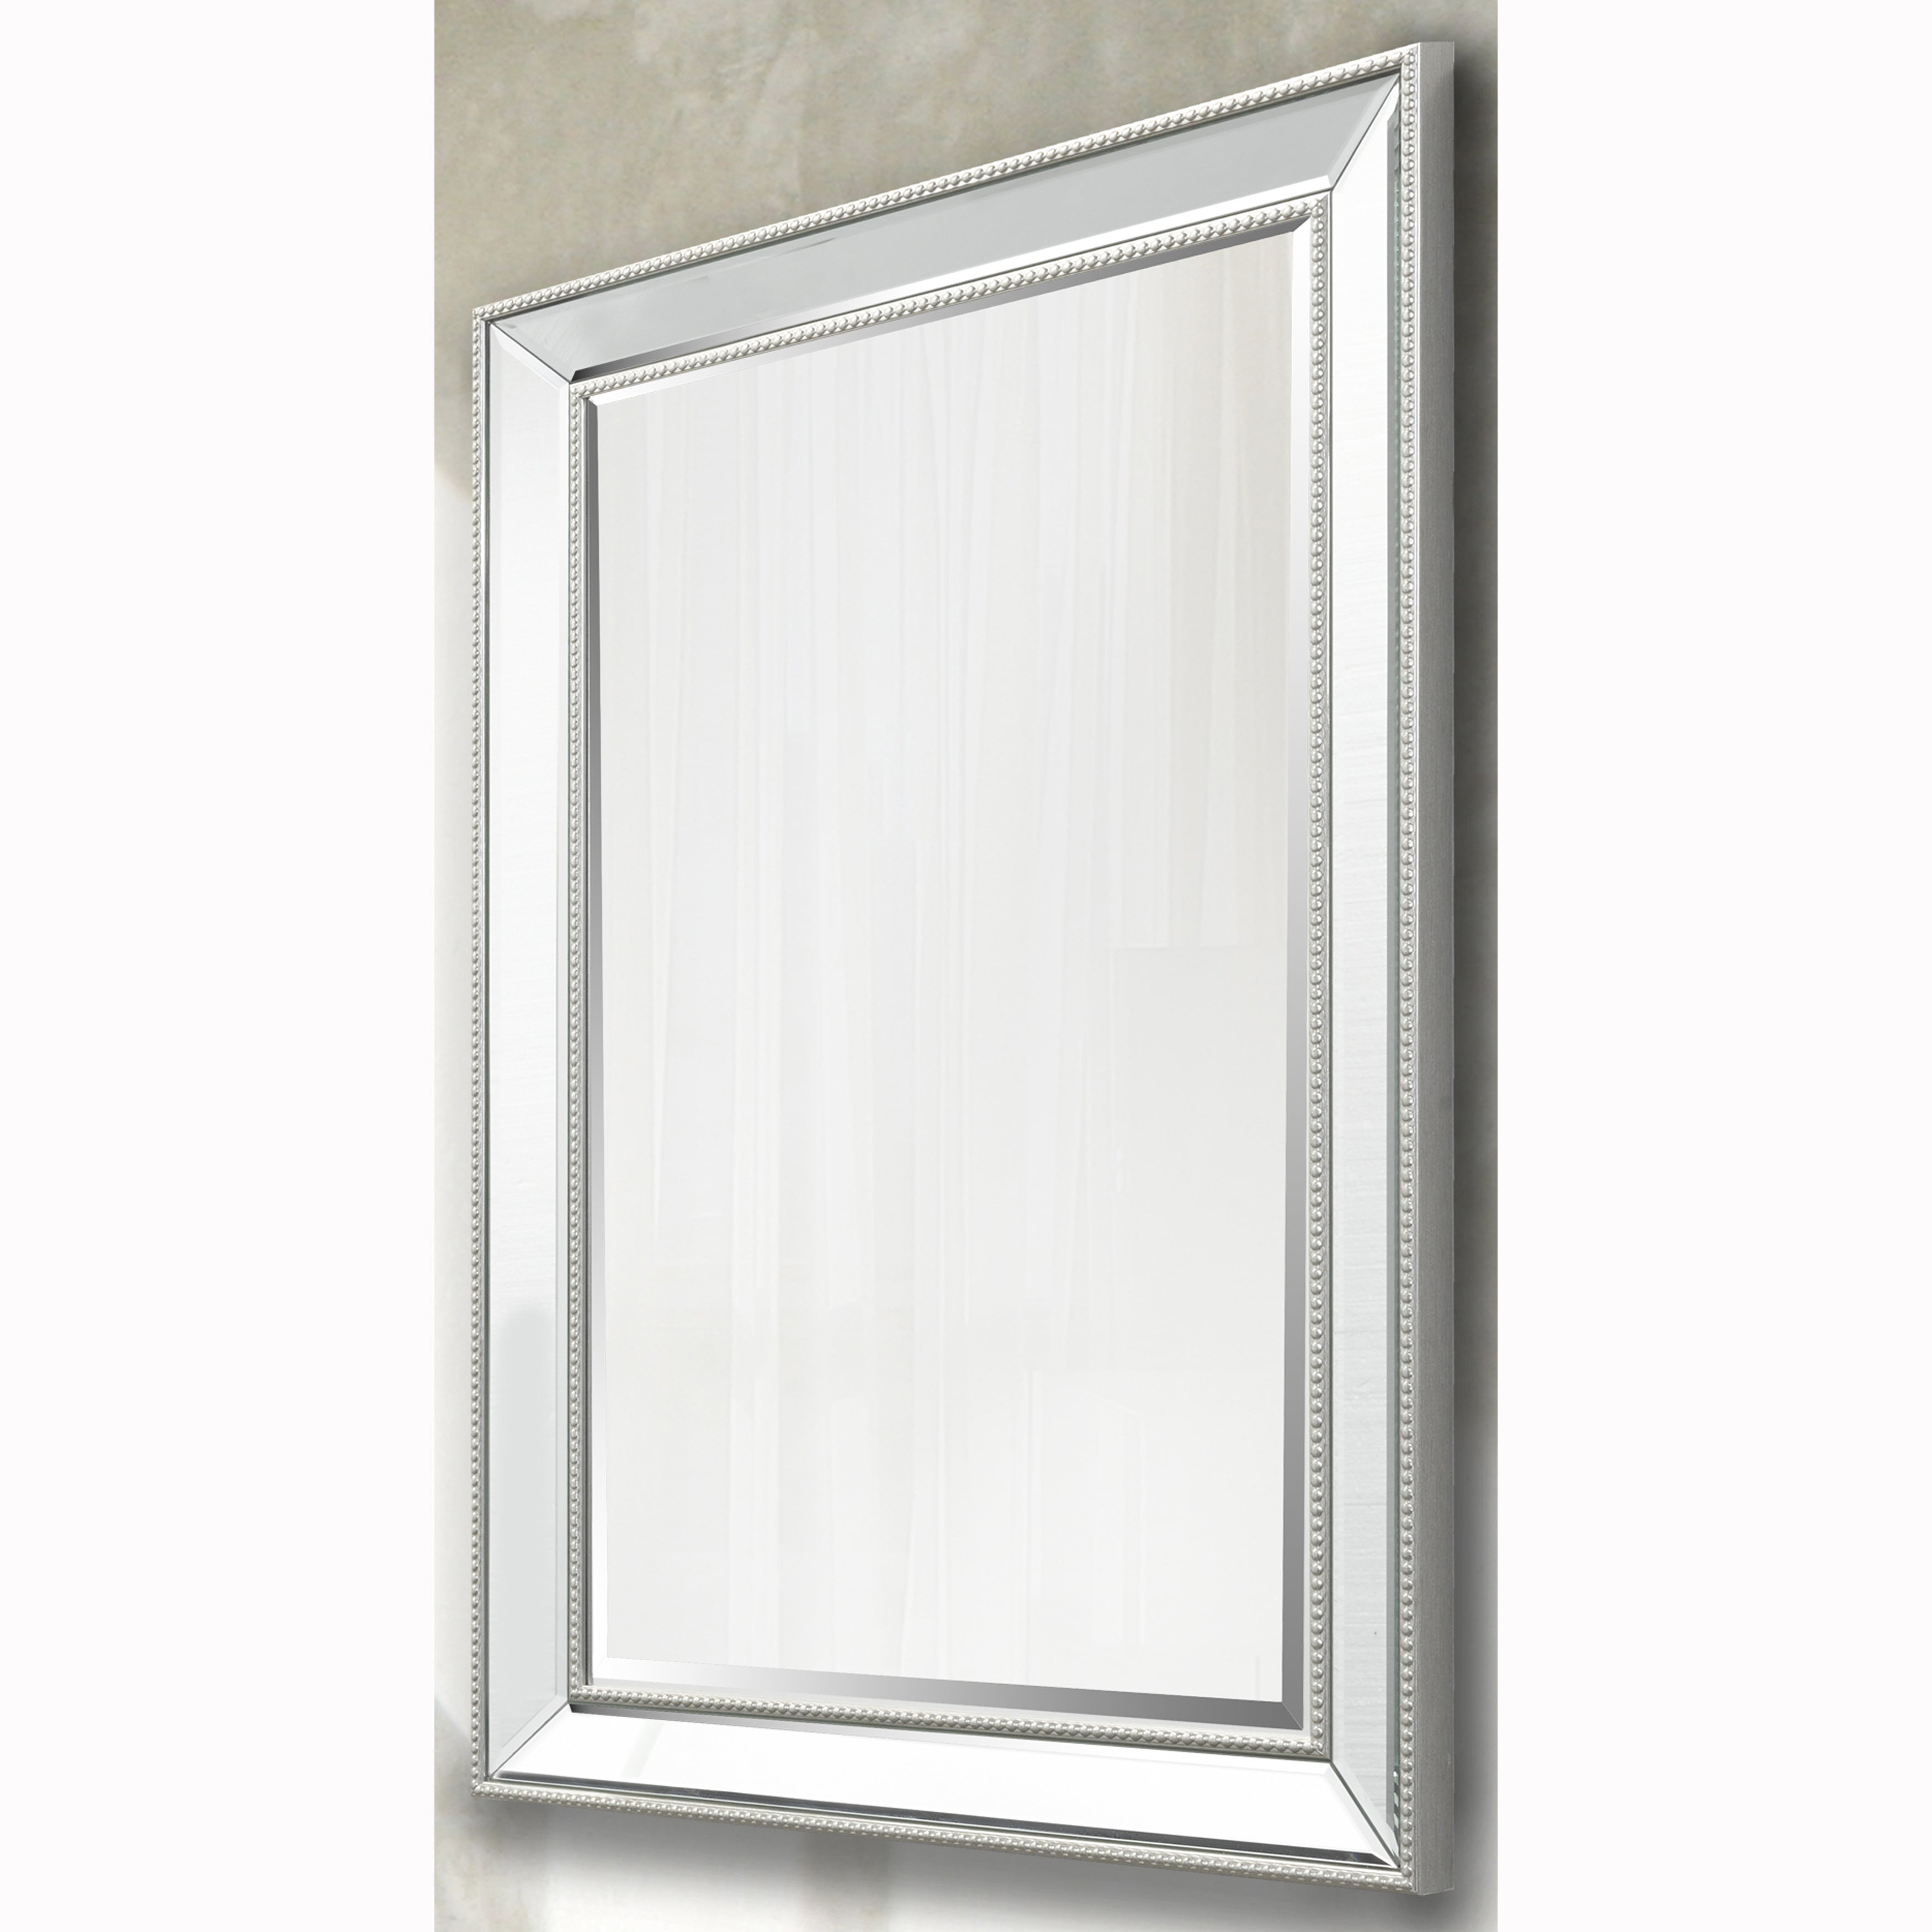 Fashionable Silver Beaded Rectangular Vanity Wall Mirror And Beveled Mirror Frame Inside Beaded Accent Wall Mirrors (View 10 of 20)